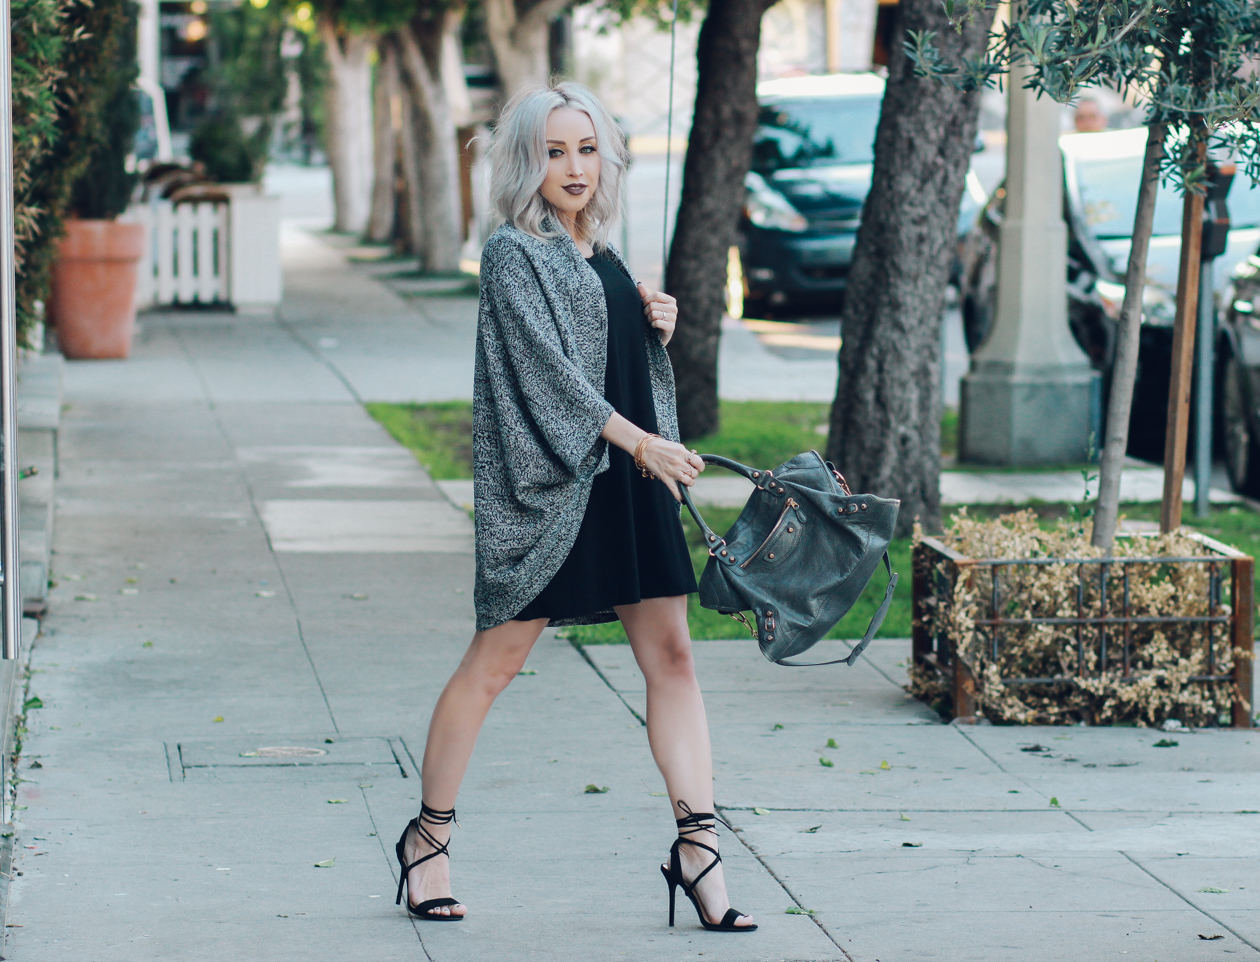 Heathered Cardigan - Lace Up Heels - Grey Balenciaga Bag - Anastasia Beverly Hills Liquid Lipstick | BlondieintheCity.com